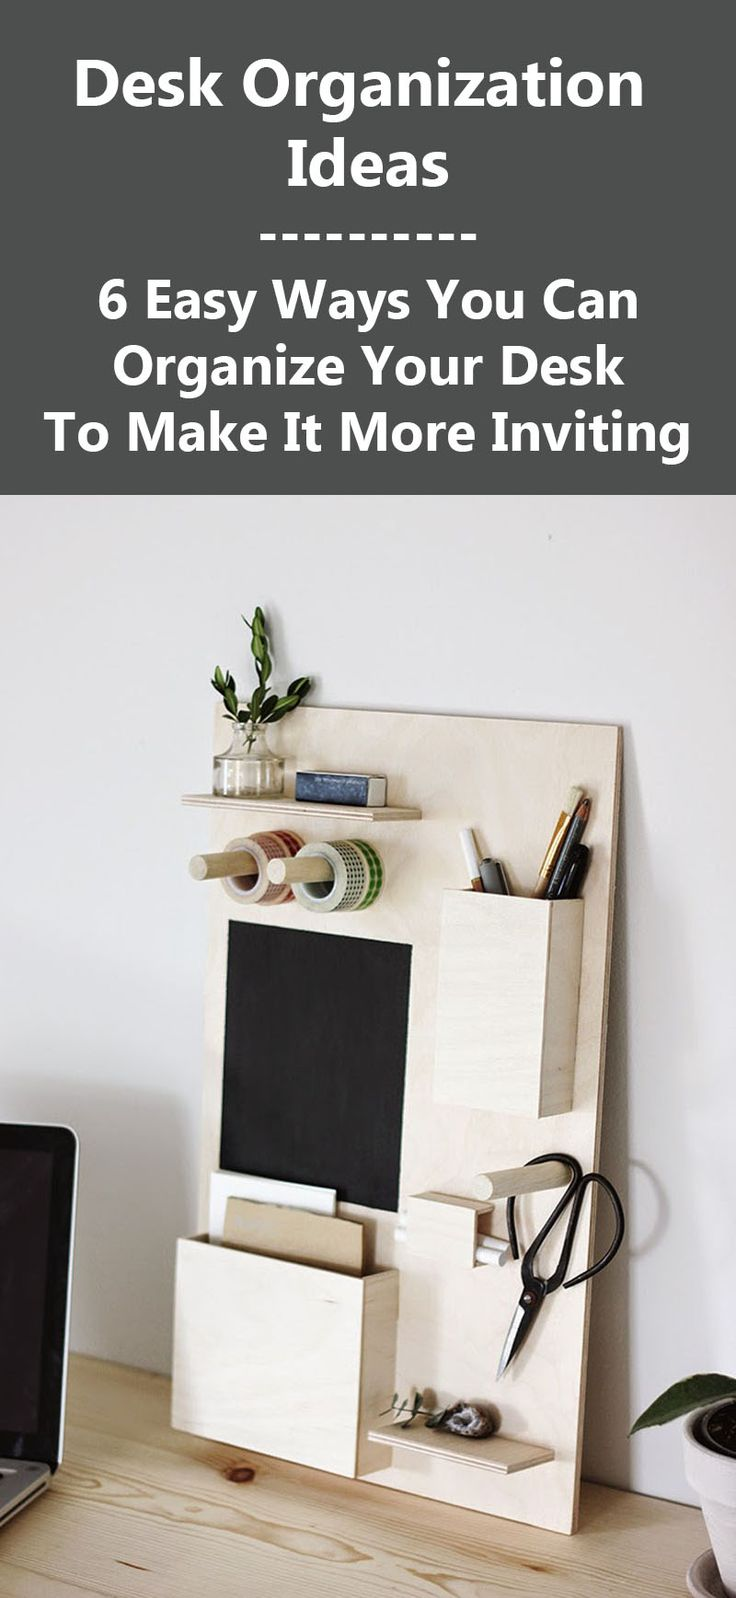 Desk Organization Ideas - 6 Easy Ways You Can Organize Your Desk To Make It More Inviting